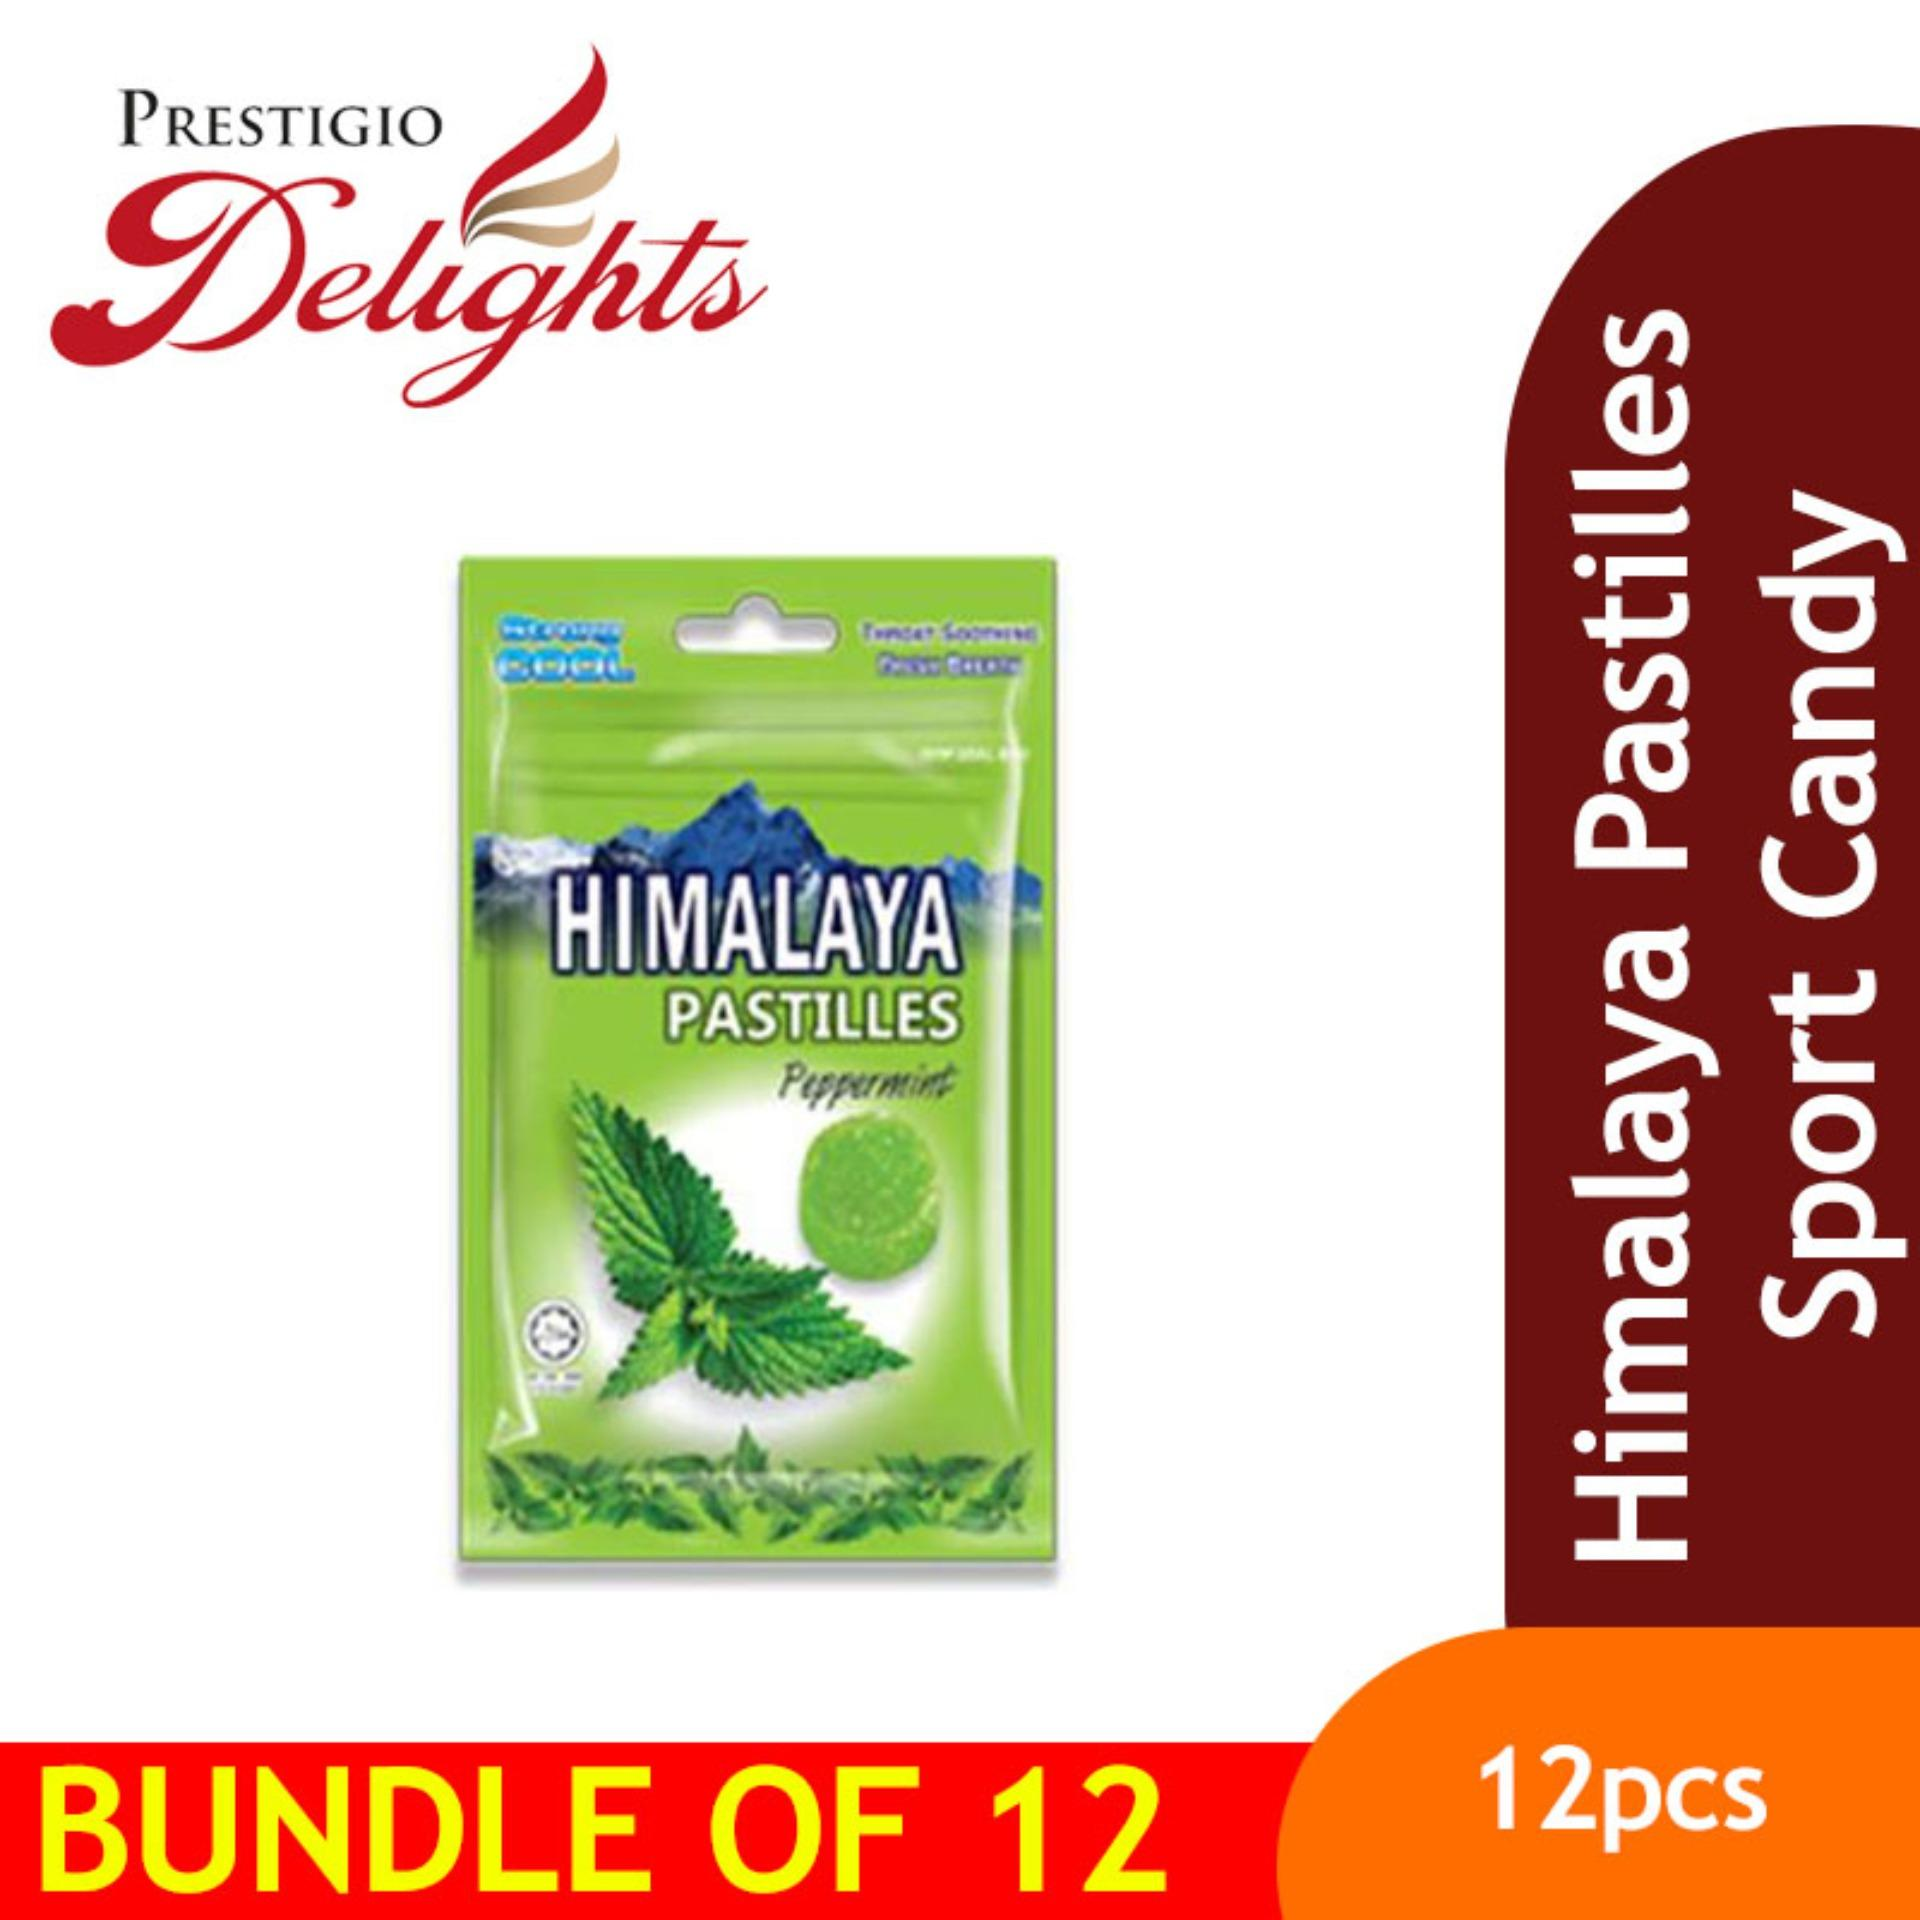 Himalaya Pastilles Sport Candy 12 Packet Per Box Sales By Prestigio Delights.